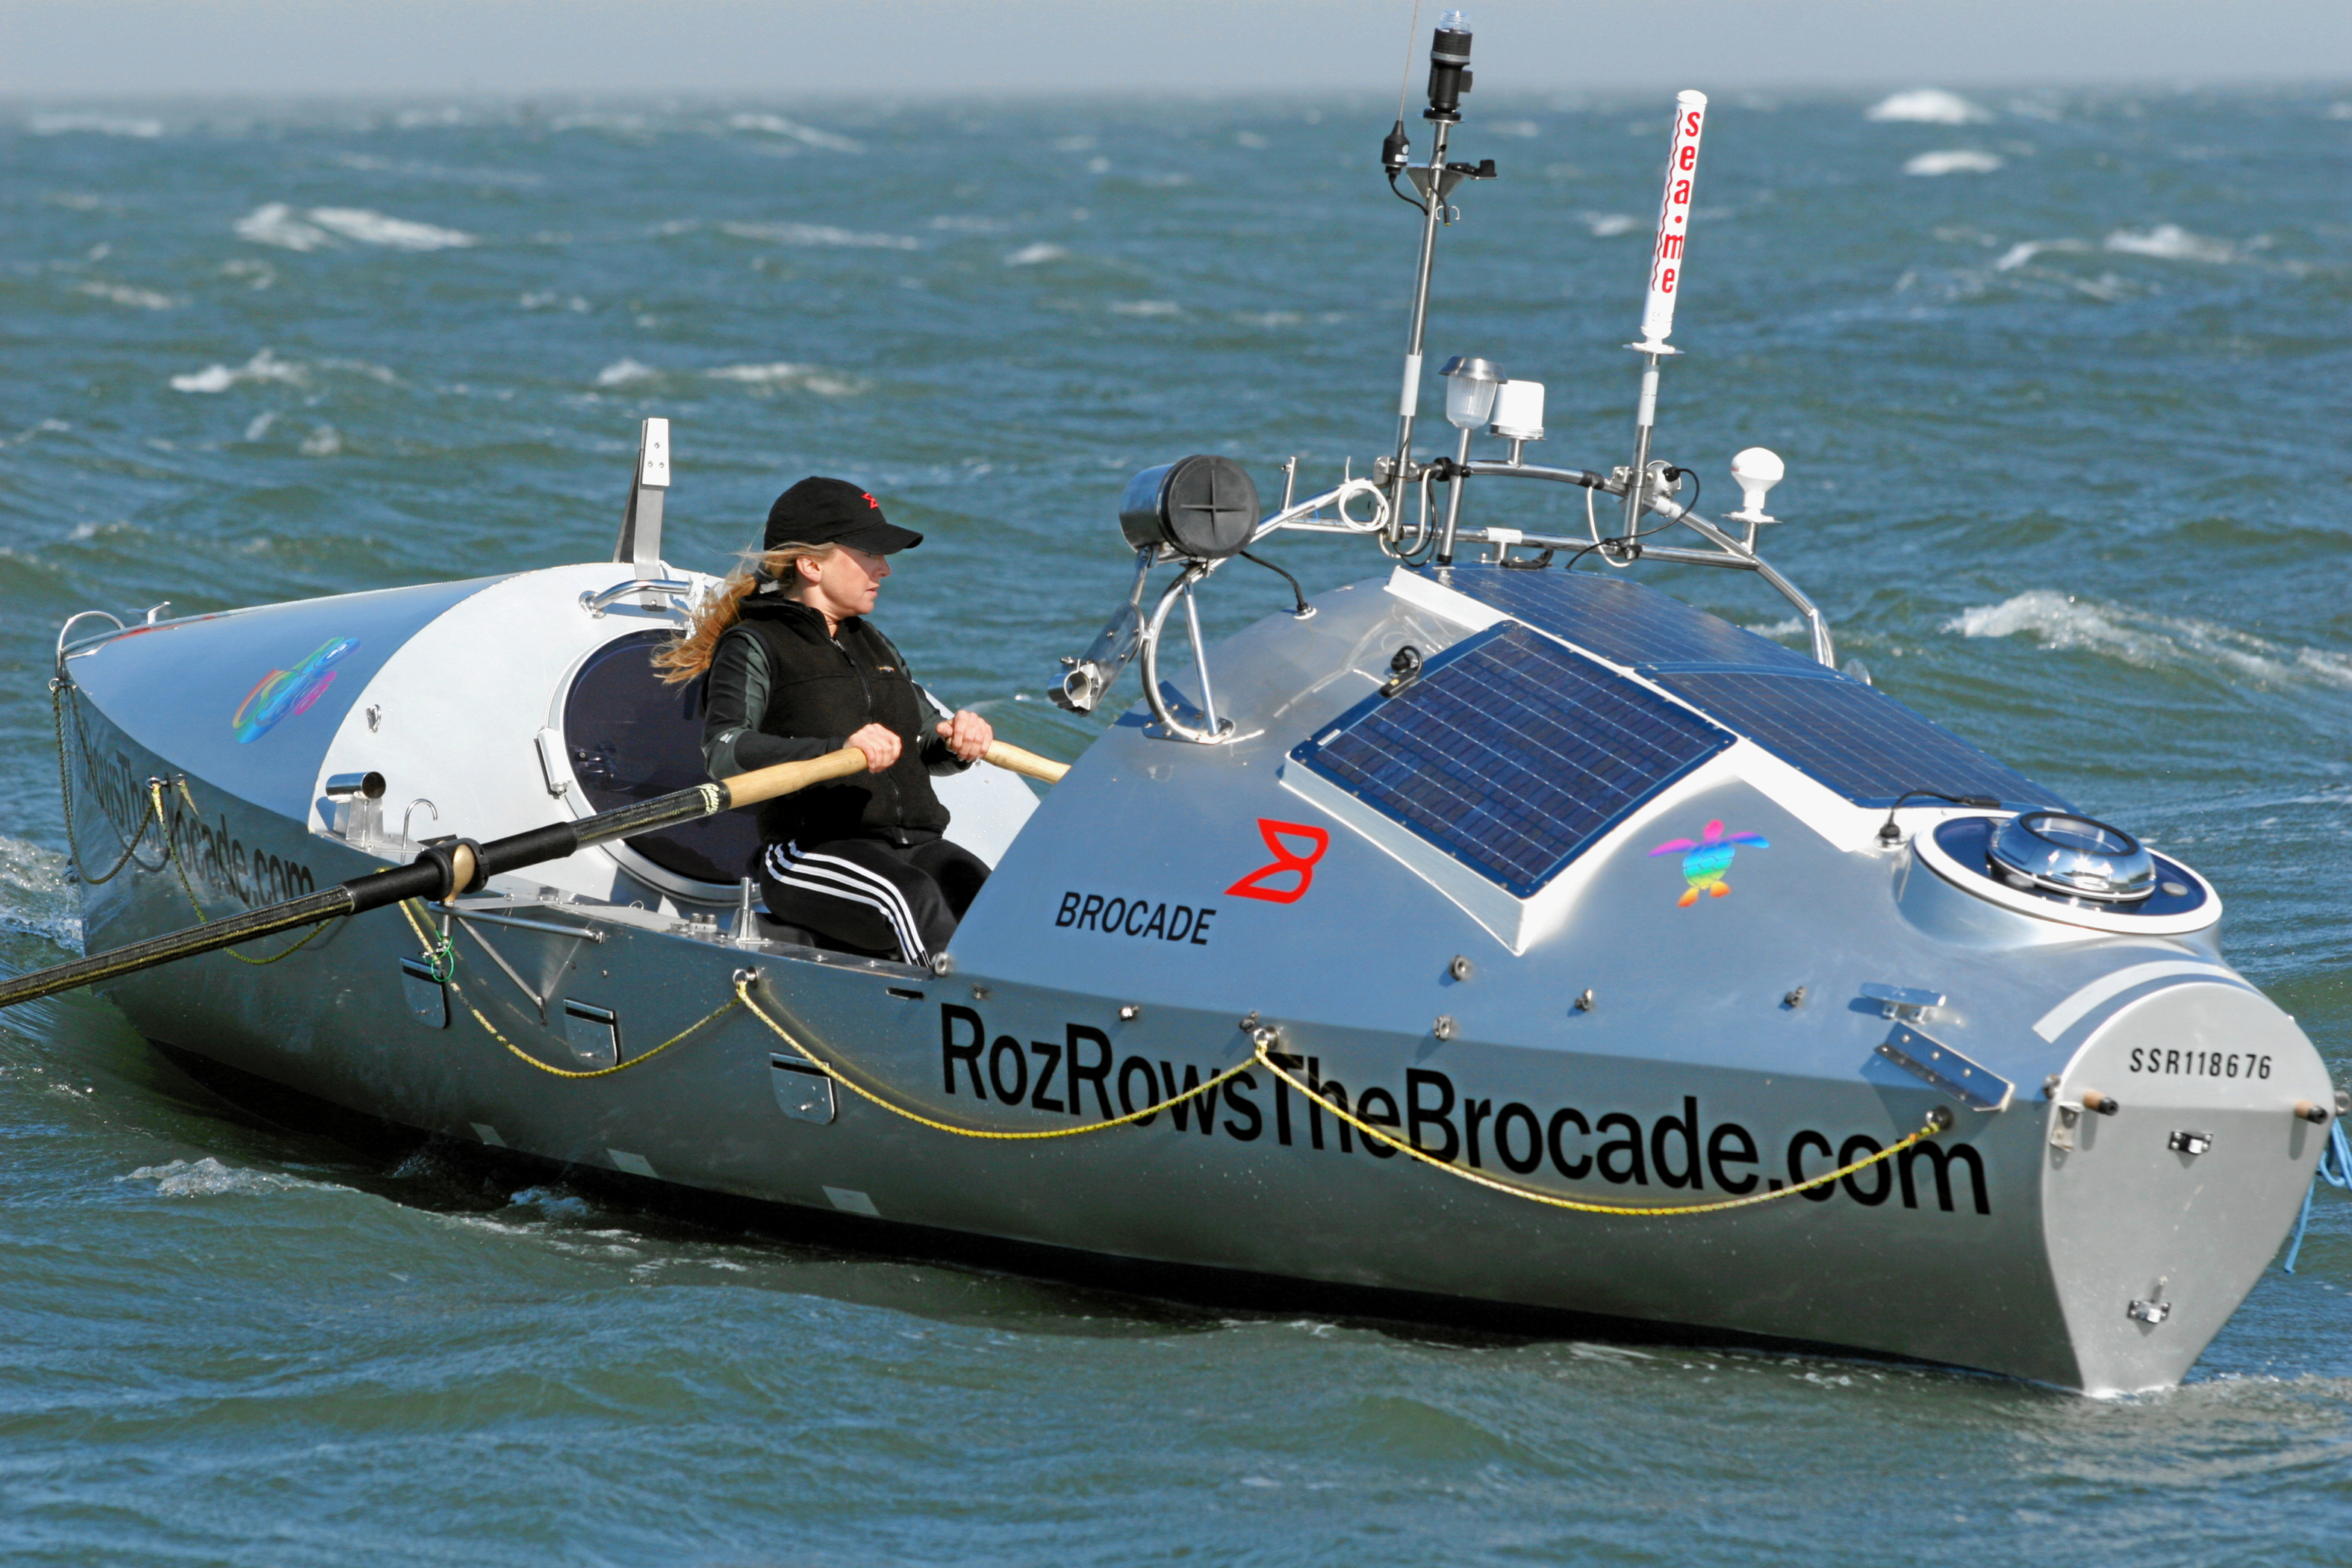 Brocade-sponsored rower Roz Savage tests her boat, The Brocade, Thursday, July 5, 2007, in San Francisco Bay near Sausalito, Calif., in preparation to row across the Pacific Ocean, with a projected launch date of July 10, 2007. (Photo by Court Mast, Mast Photography)